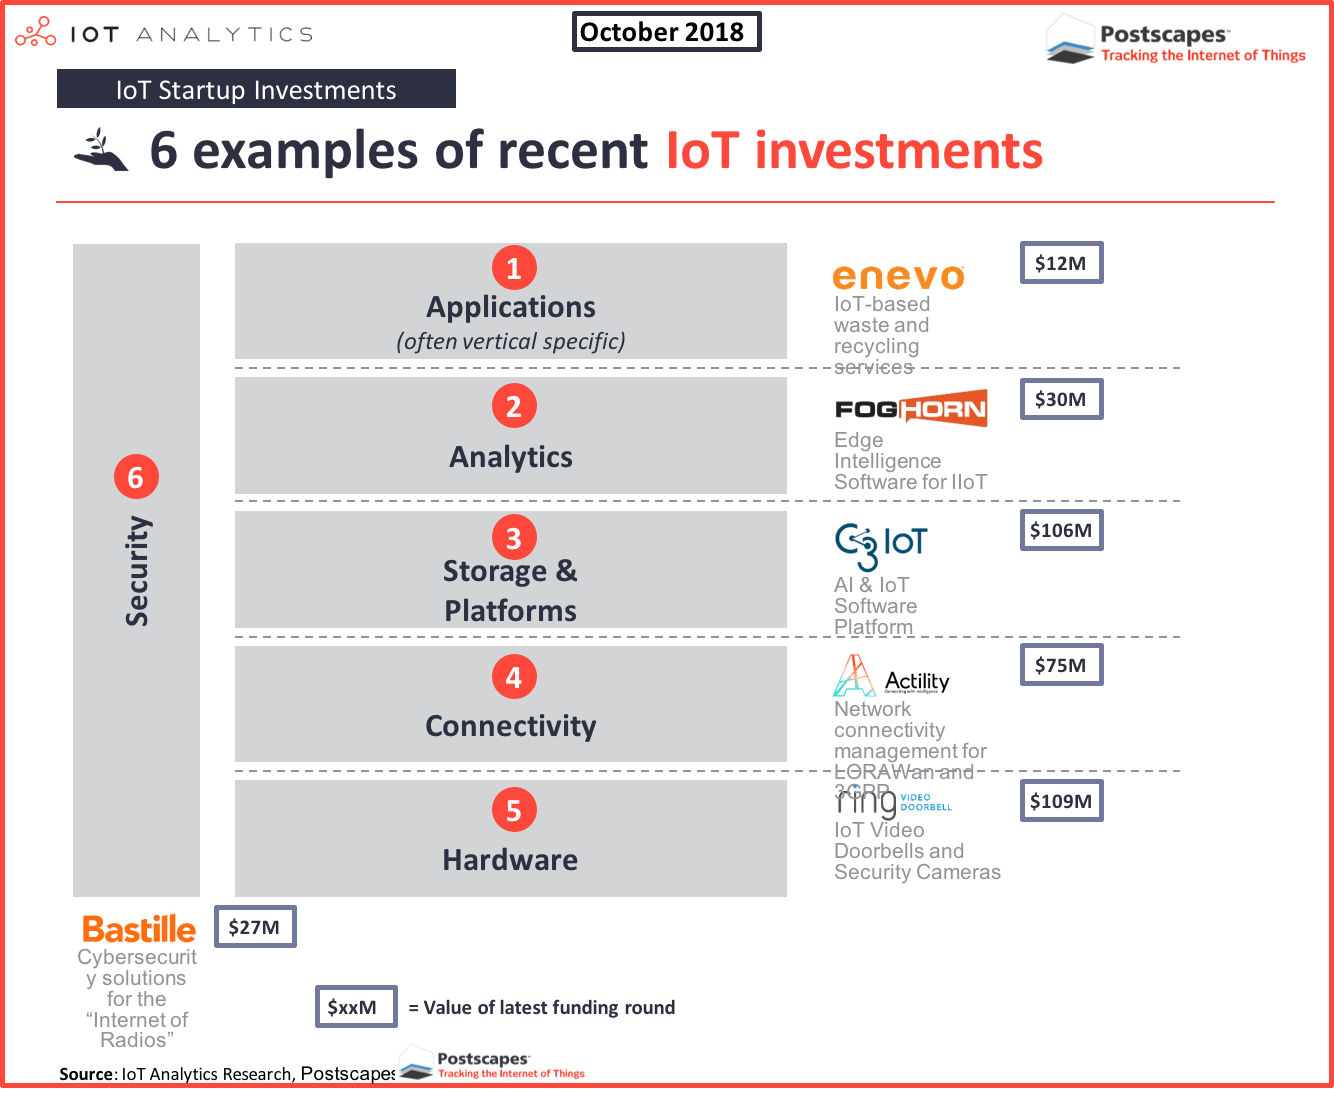 IoT Investment examples 2018